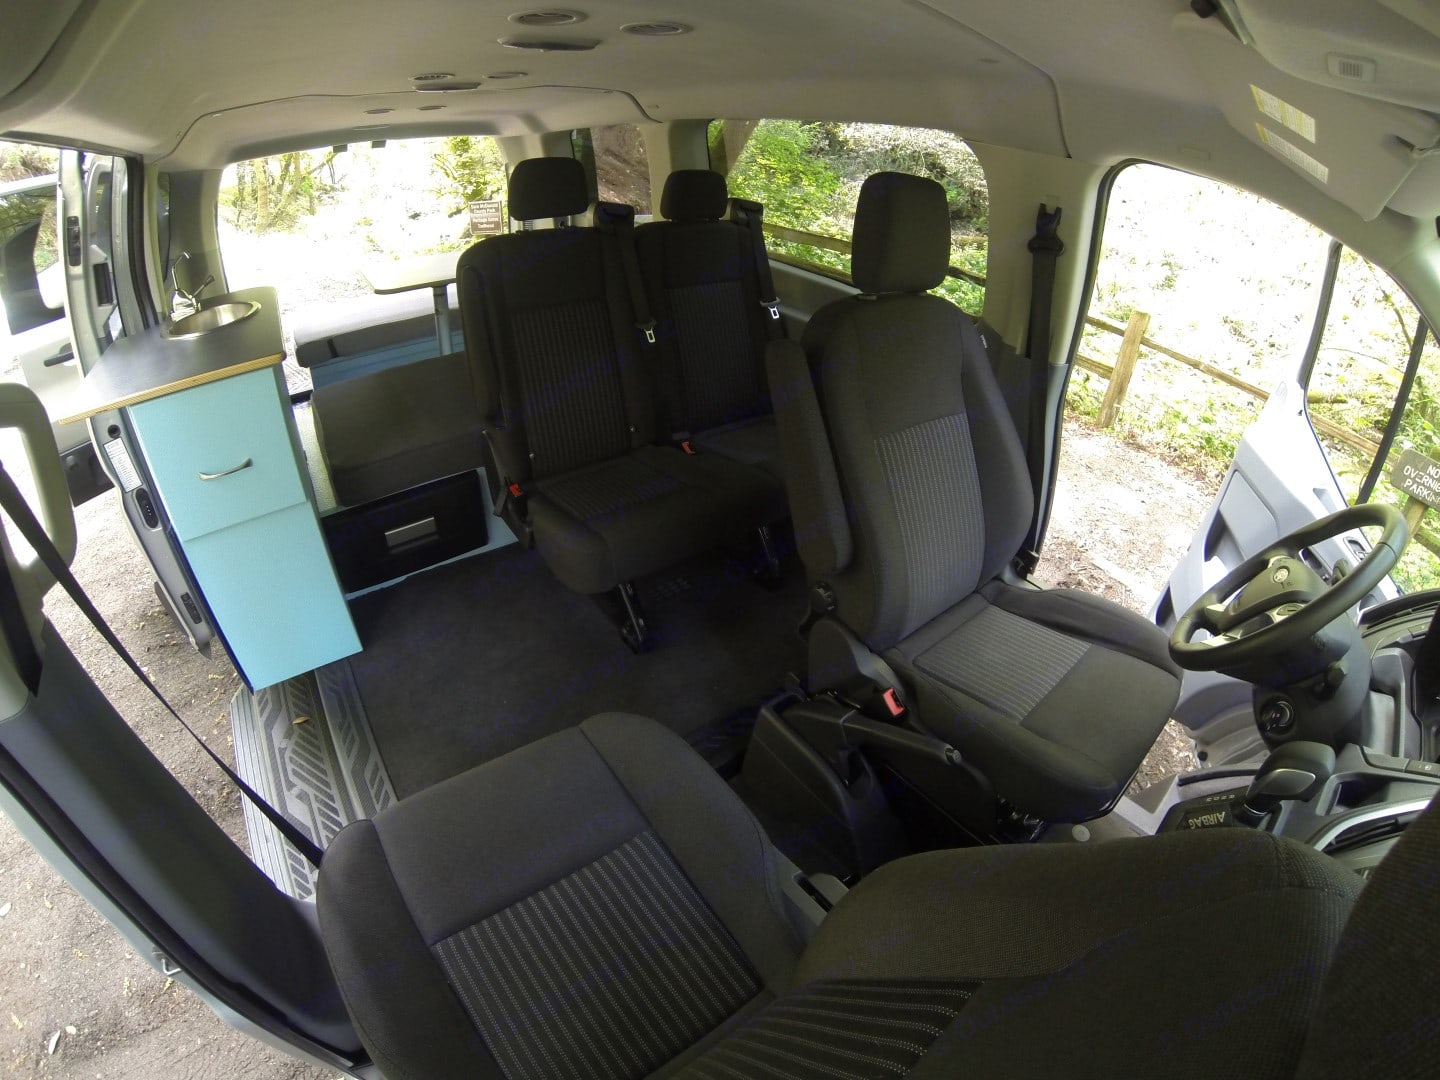 The front passenger side seat swivels around so you can relax and stretch out your legs. We can remove the two seats in the back if you only have 1-2 travelers and want more space. All our Trekker Vans include an 8-gallon refrigerator and a 7-gallon sink ready for your adventure. . Ford Van 2016